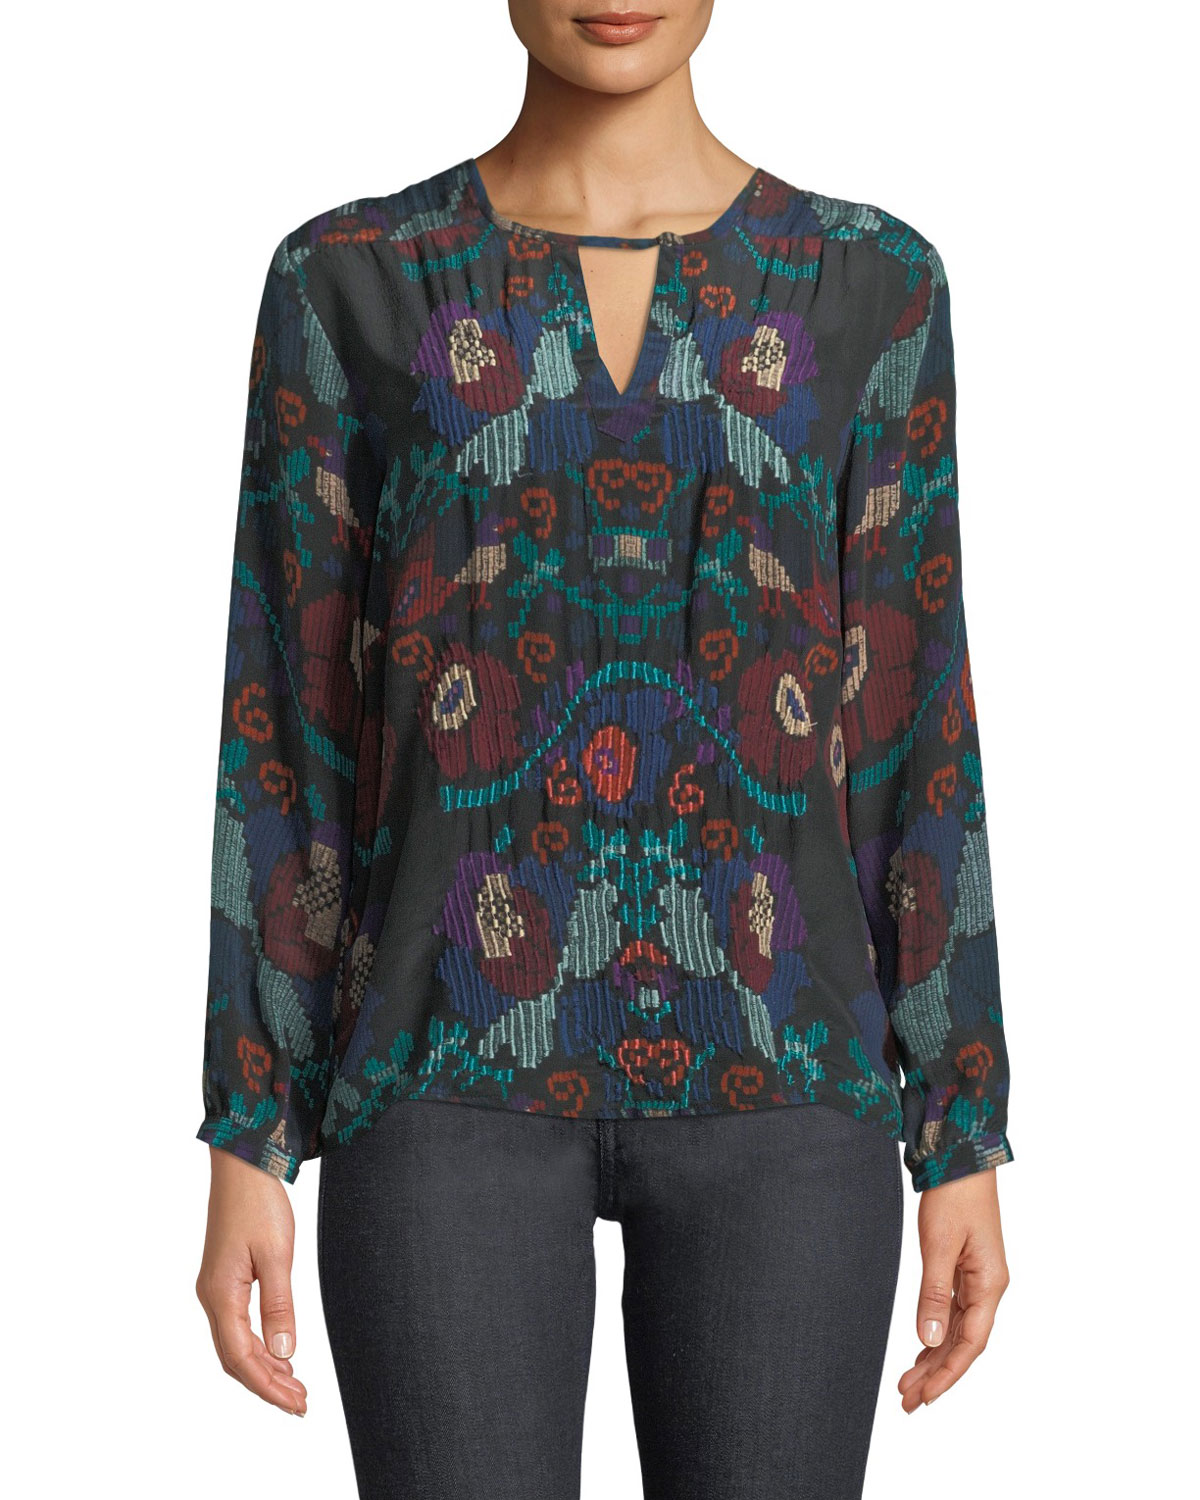 Caitlyn Long-Sleeve Multicolor Embroidered Blouse, Plus Size